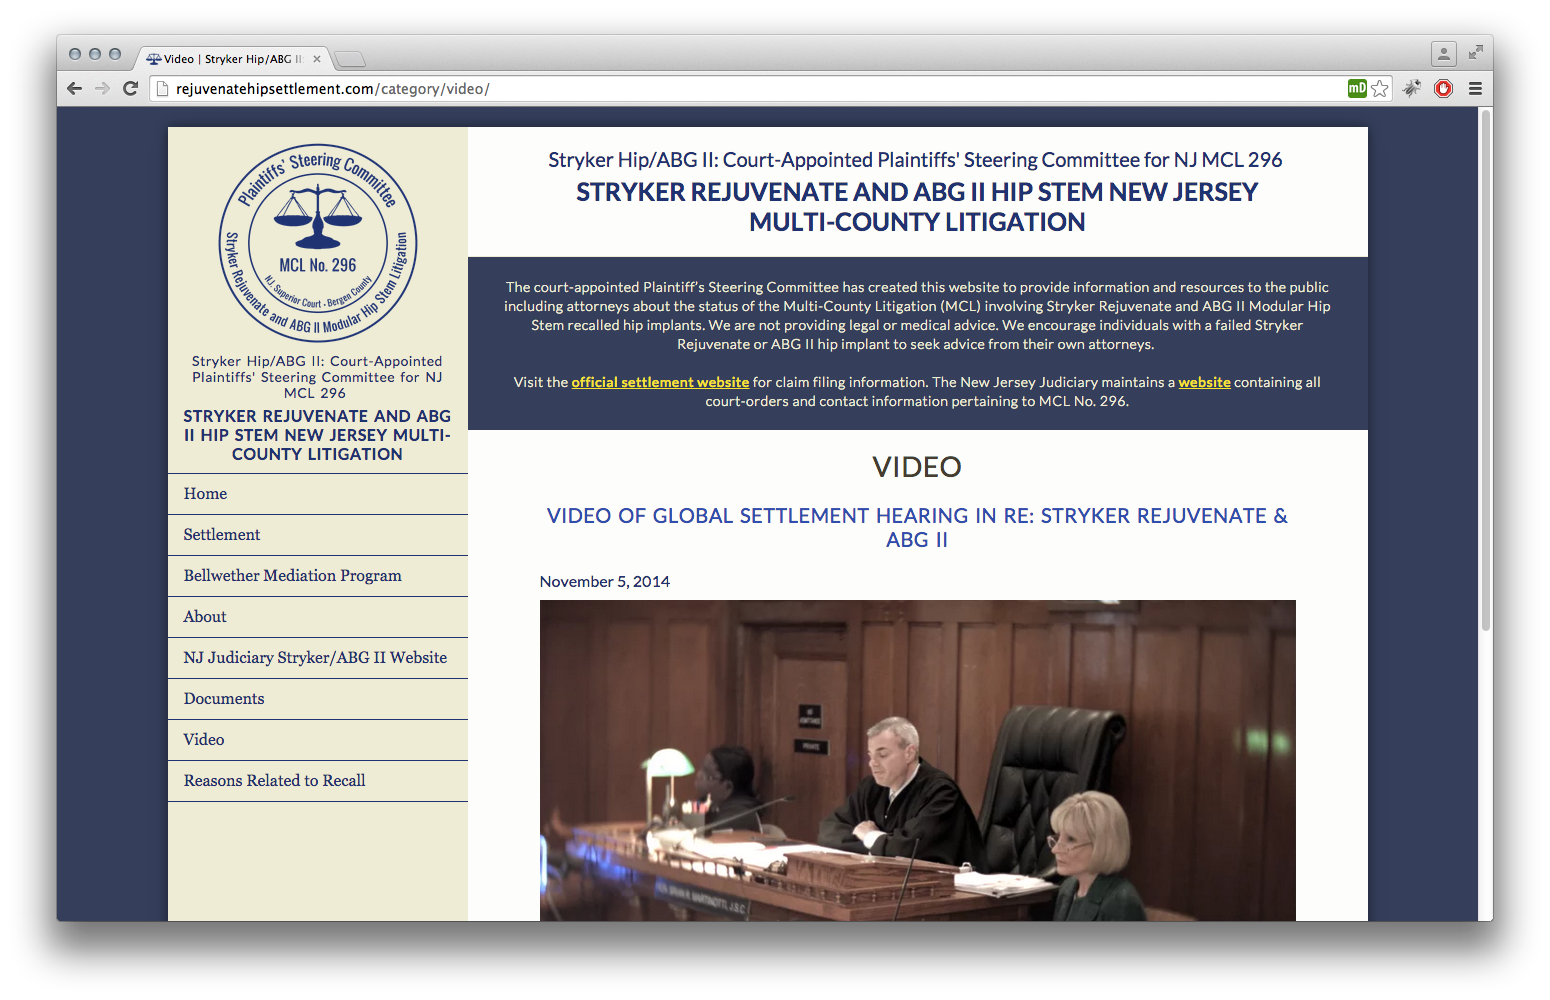 Stryker Rejuvenate/ABG II Plaintiff's Steering Committee Website